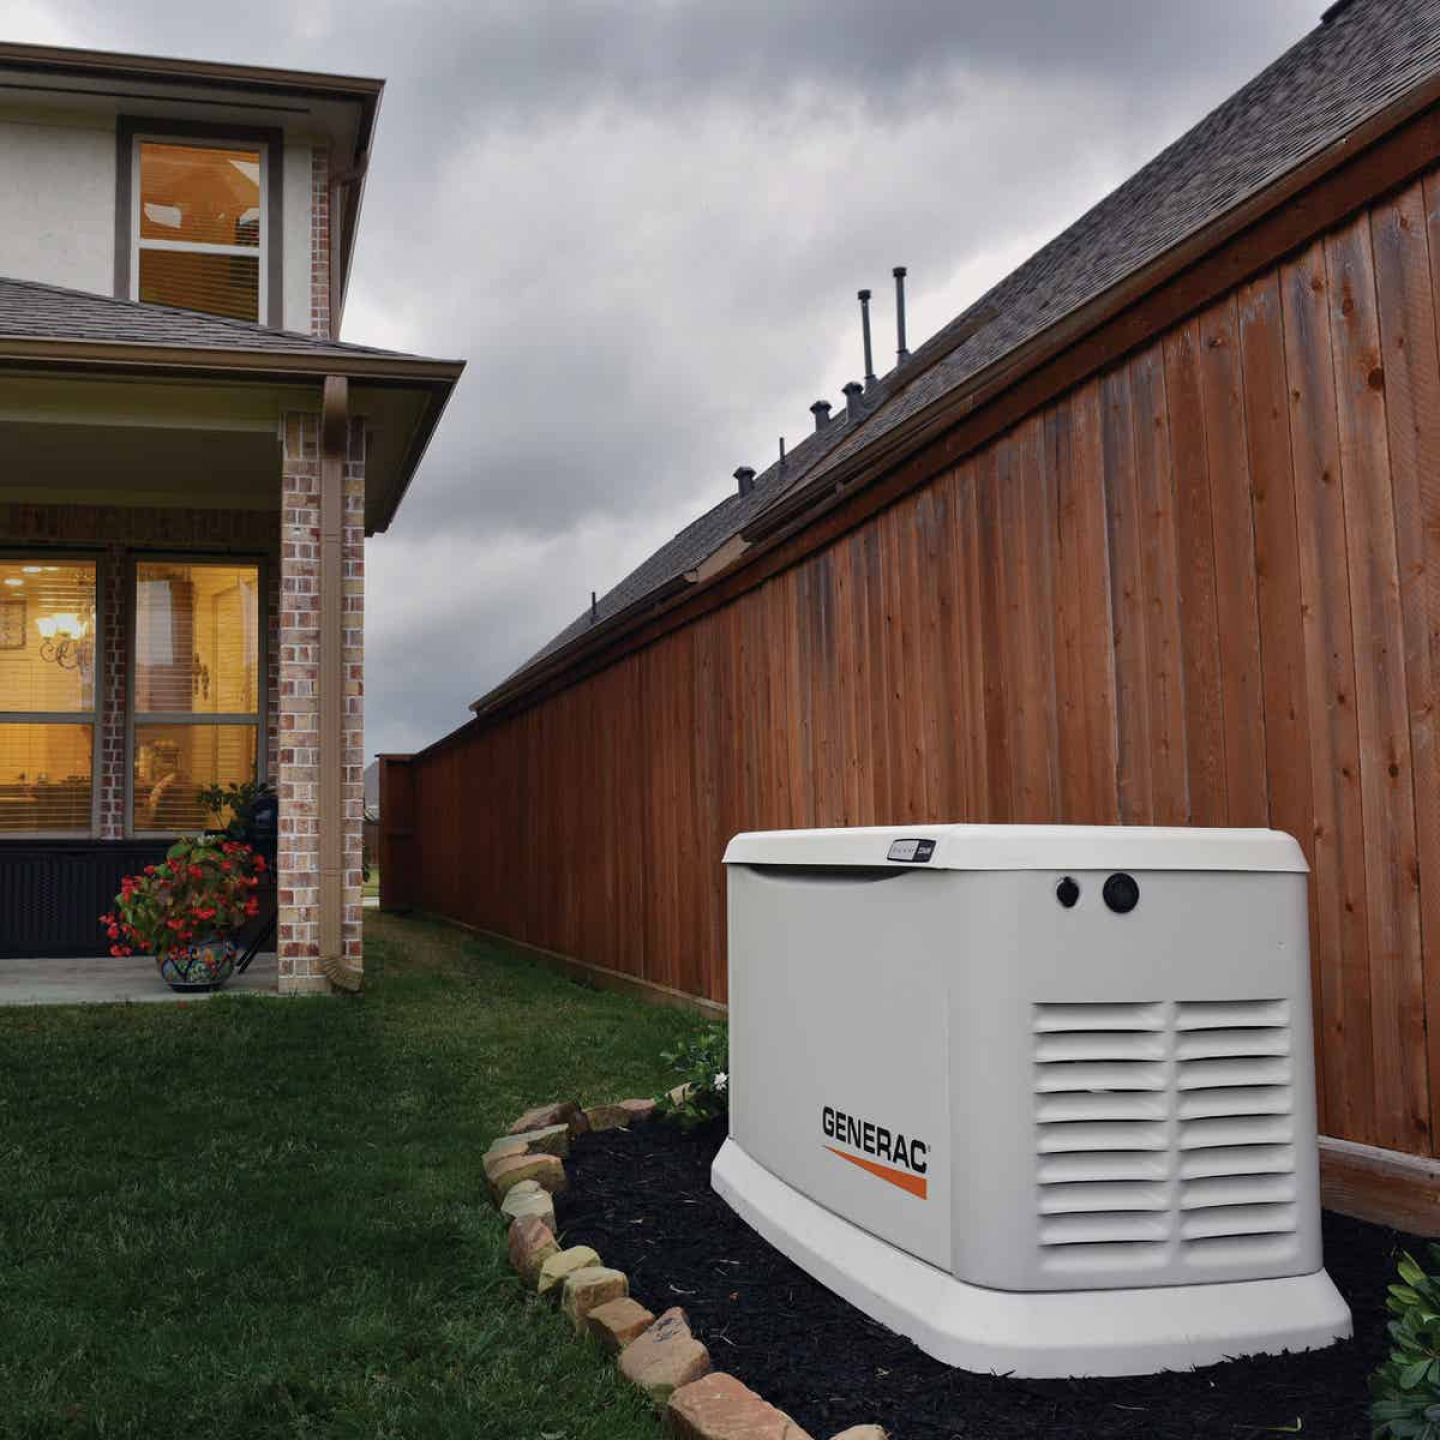 Generac Guardian WiFi 16,000W Natural Gas/LP Home Standby Generator Home Back Up Generator with Smart Switch Image 7